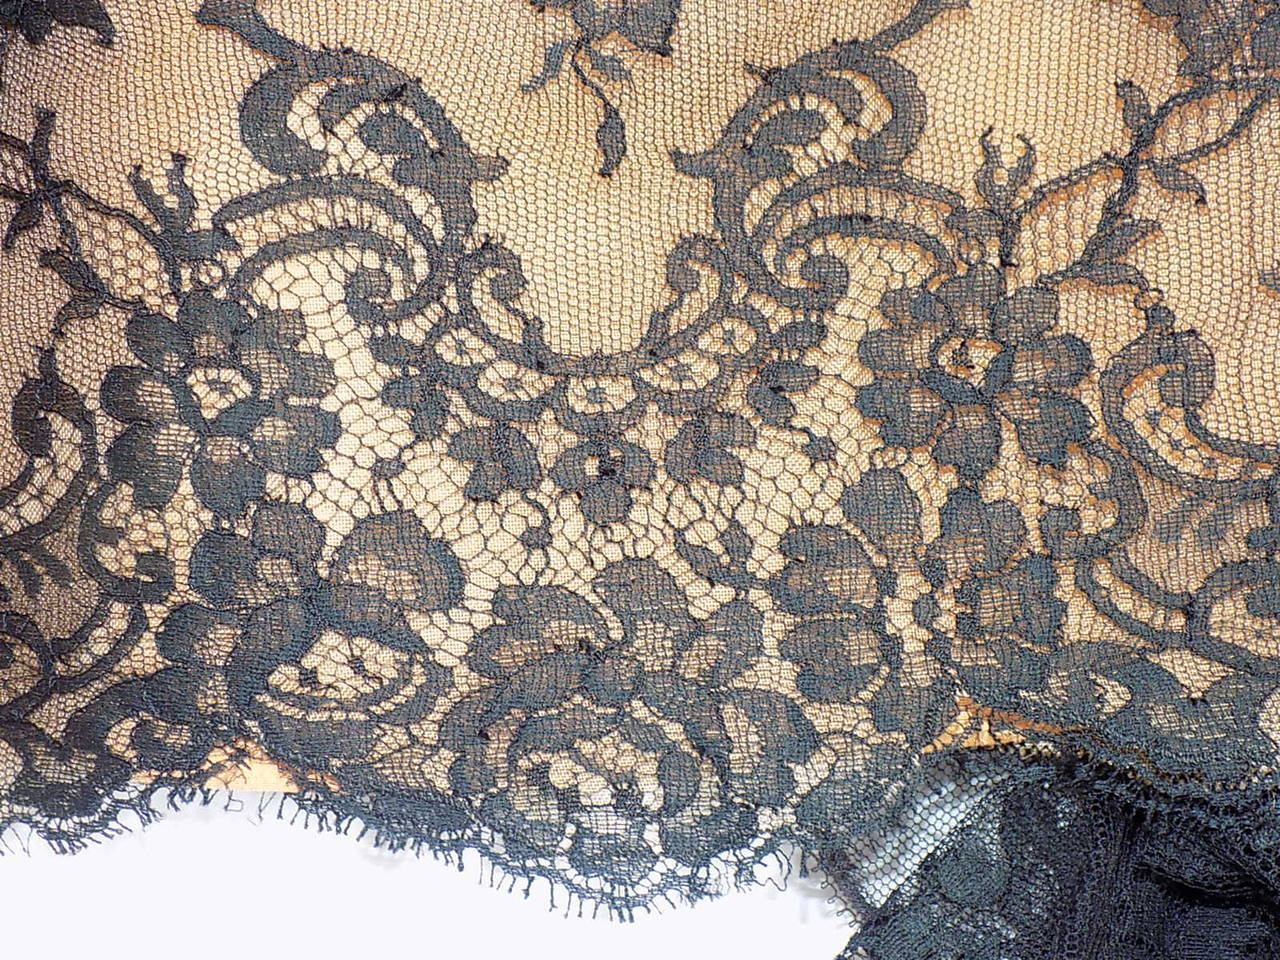 1980 Breathtatking Bill Blass Lace Dress   Rare and Collectable ! For Sale 3